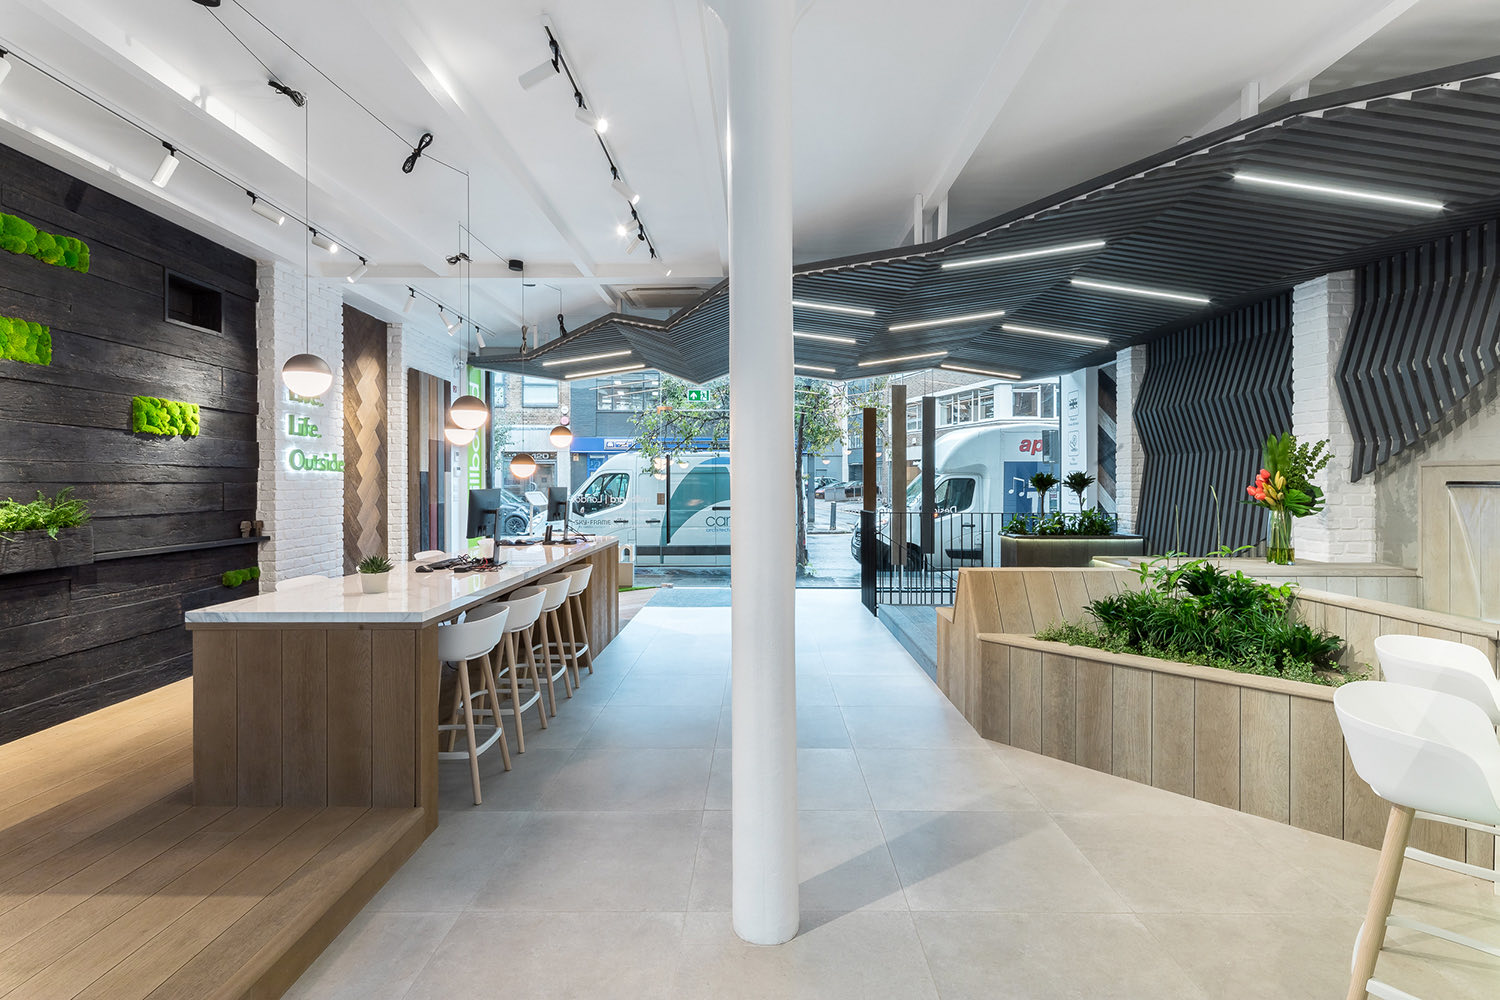 A Tour of Millboard's Biophilic London Office